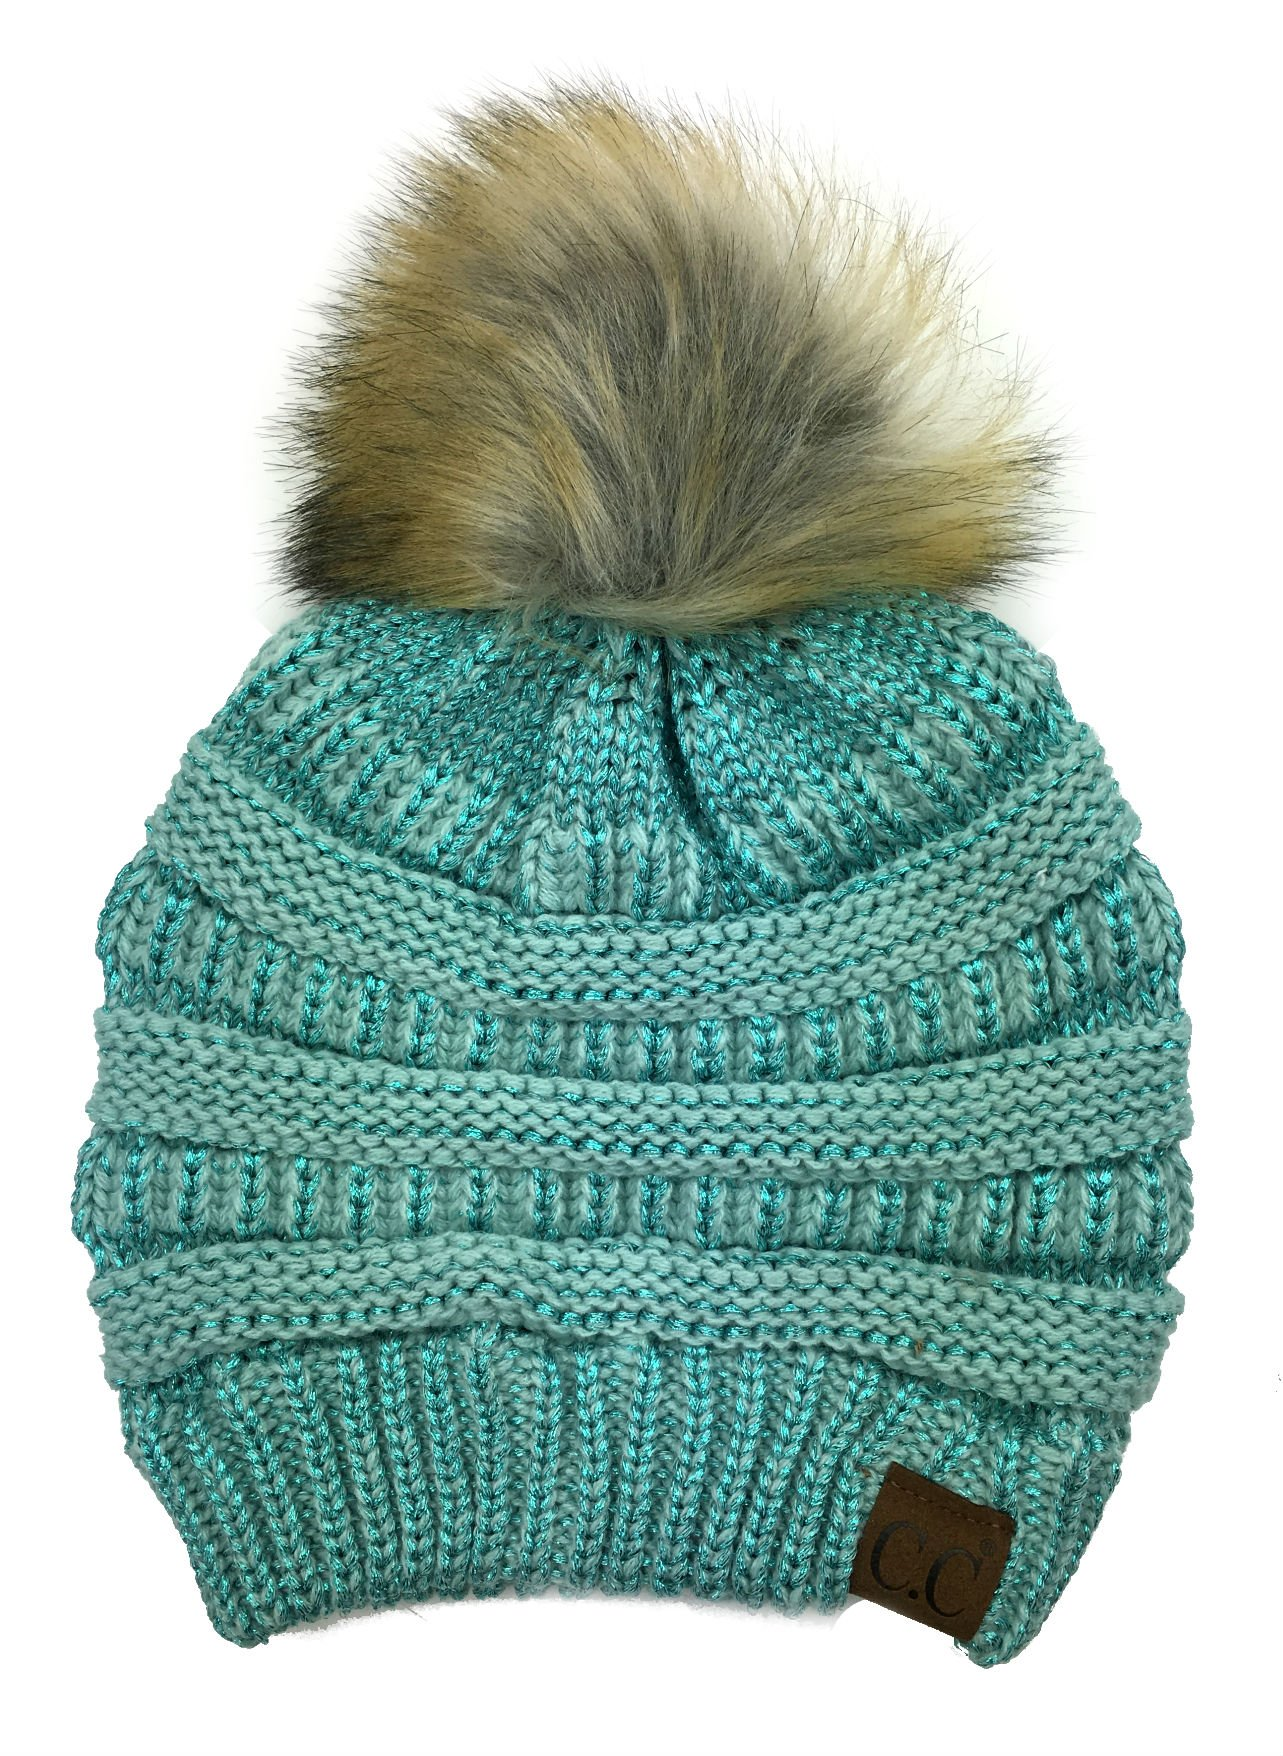 Plum Feathers Soft Stretch Cable Knit Ribbed Faux Fur Pom Pom Beanie Hat (Mint Metallic)